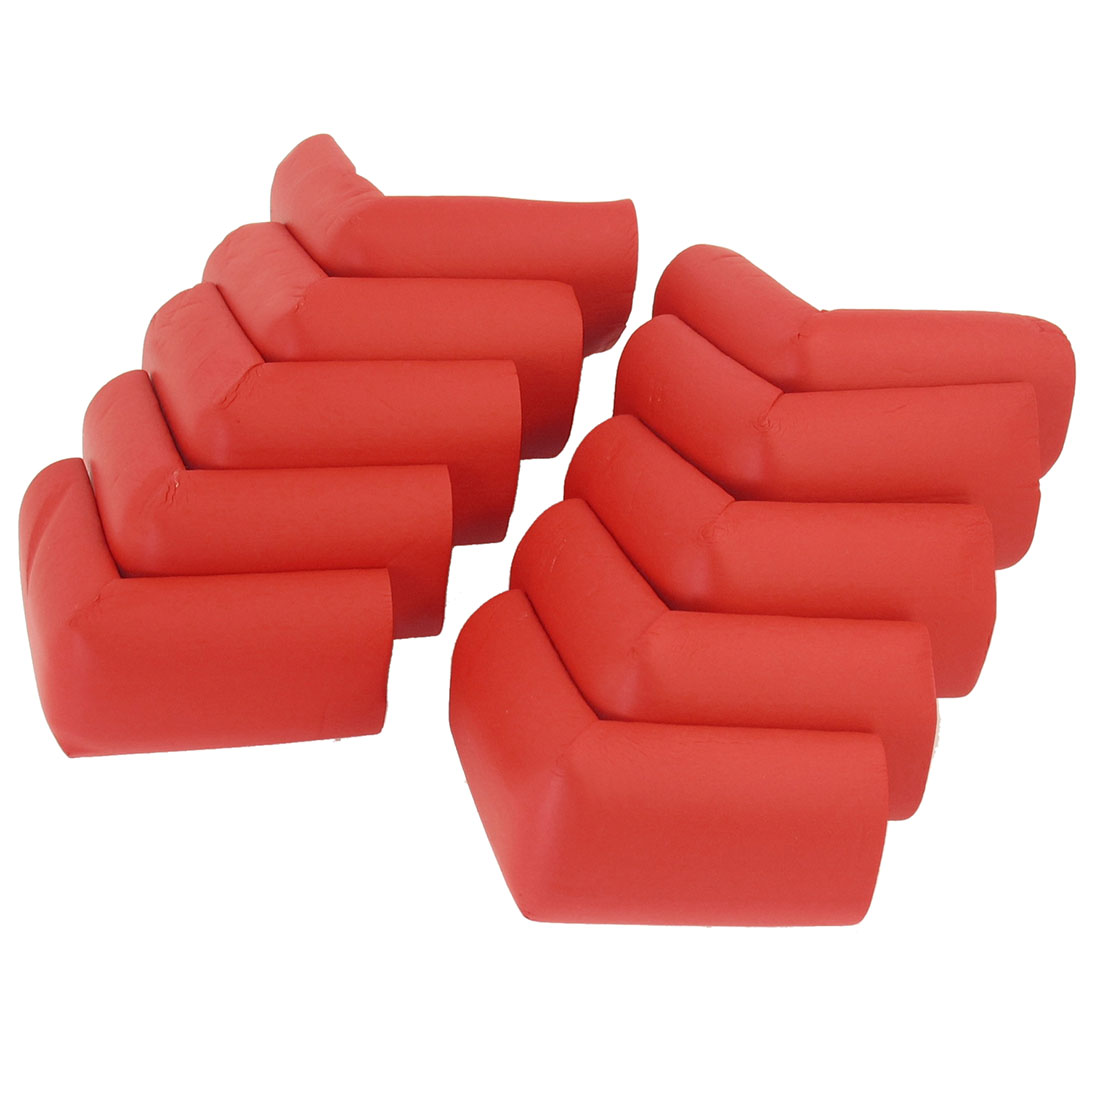 5 Pair Red Foam Mat Cupboard Desk Table Corner Cushion + Double-Sided Stickers